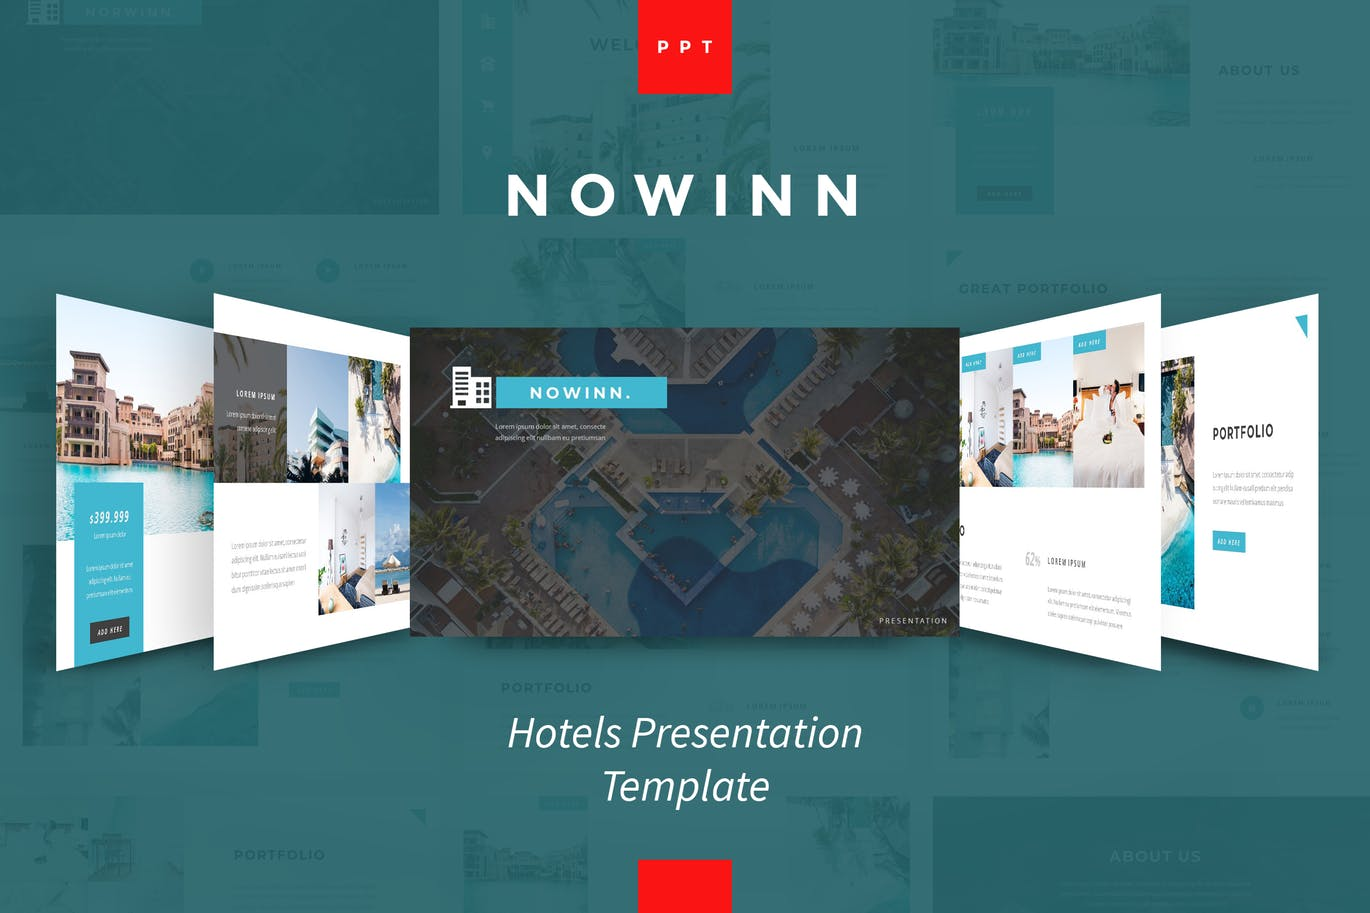 60+ PowerPoint Templates for Appealing Presentations